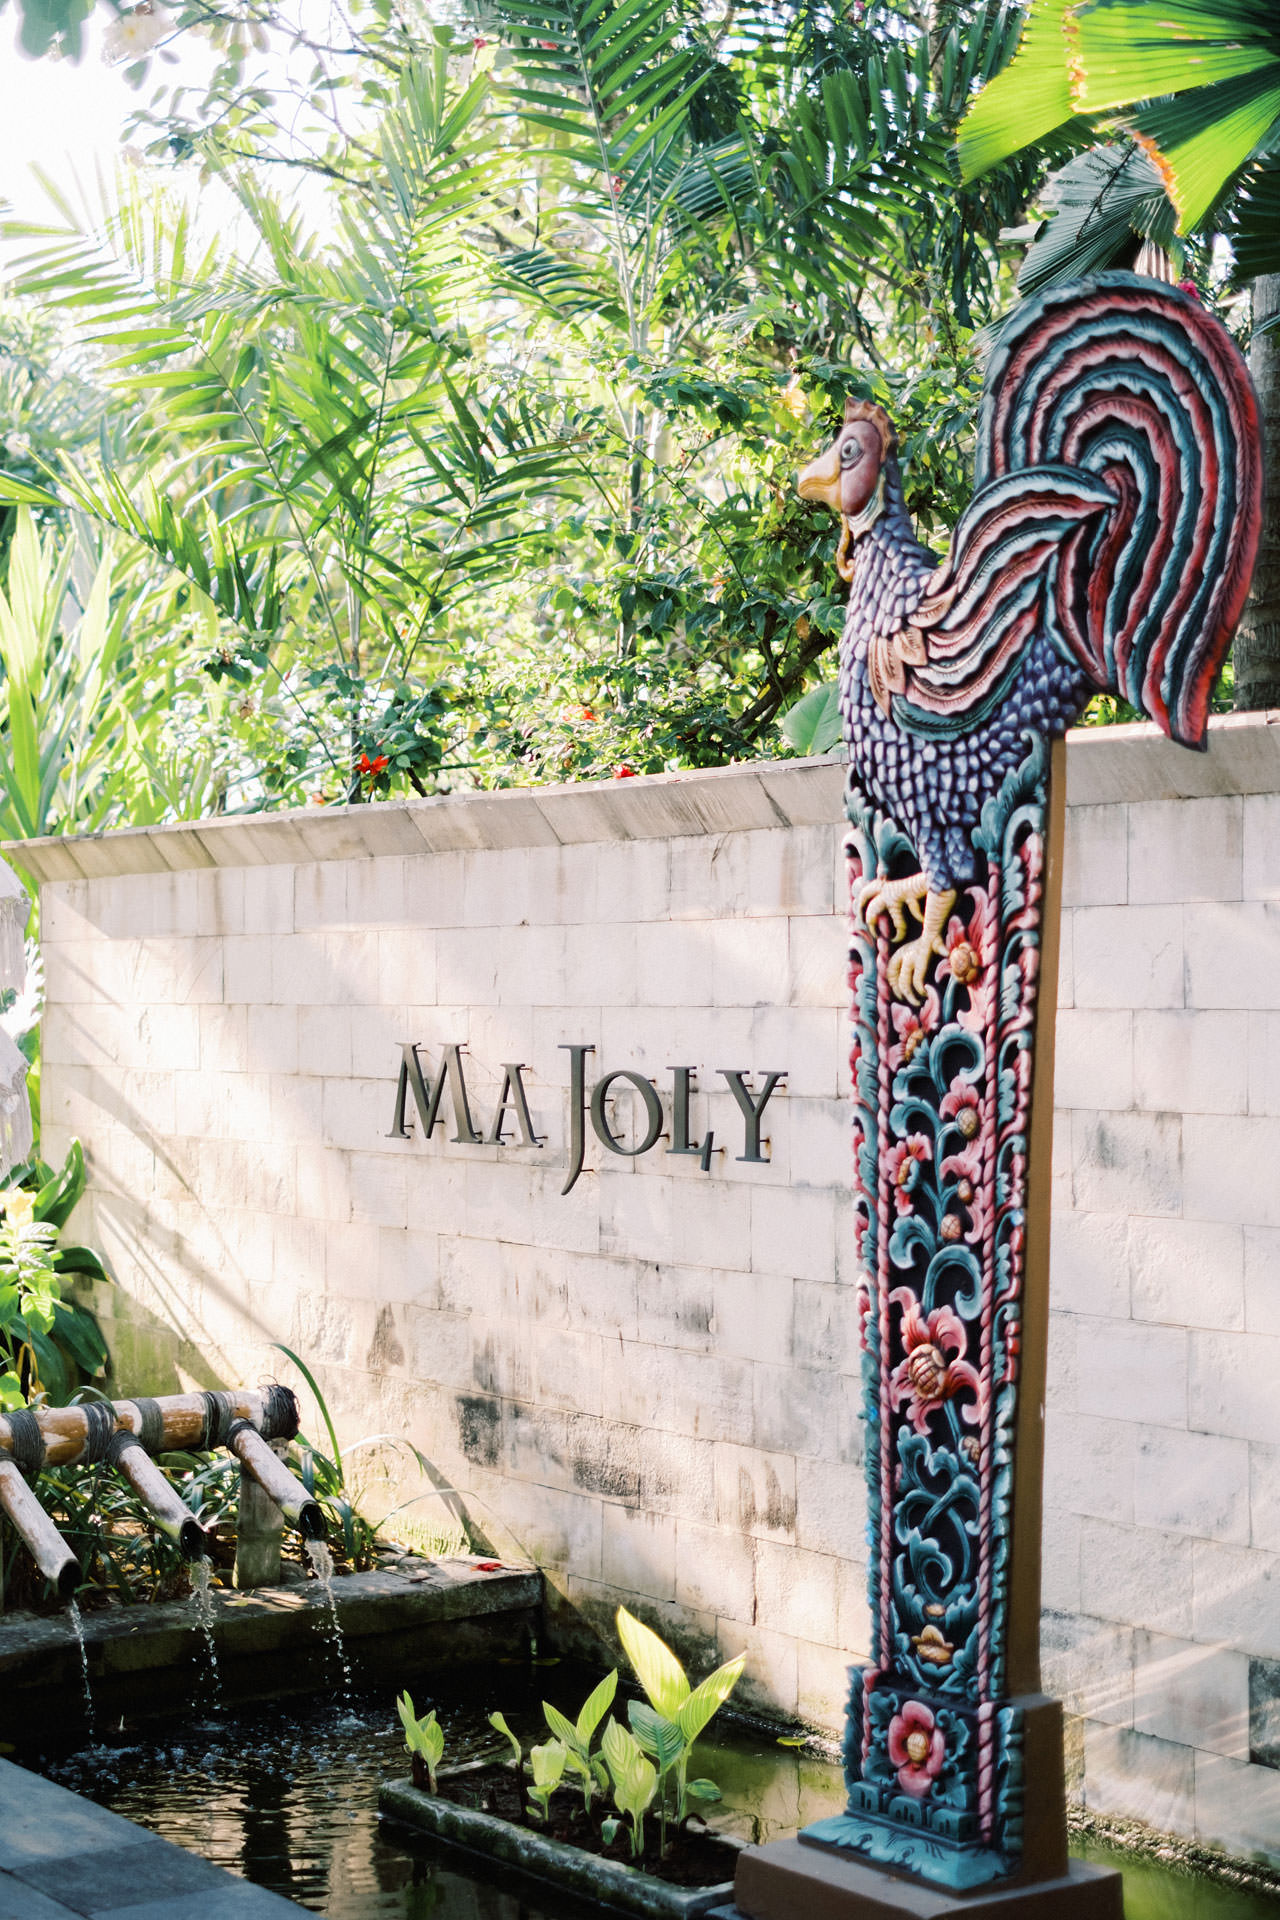 Ma Joly Bali Wedding Venue 3